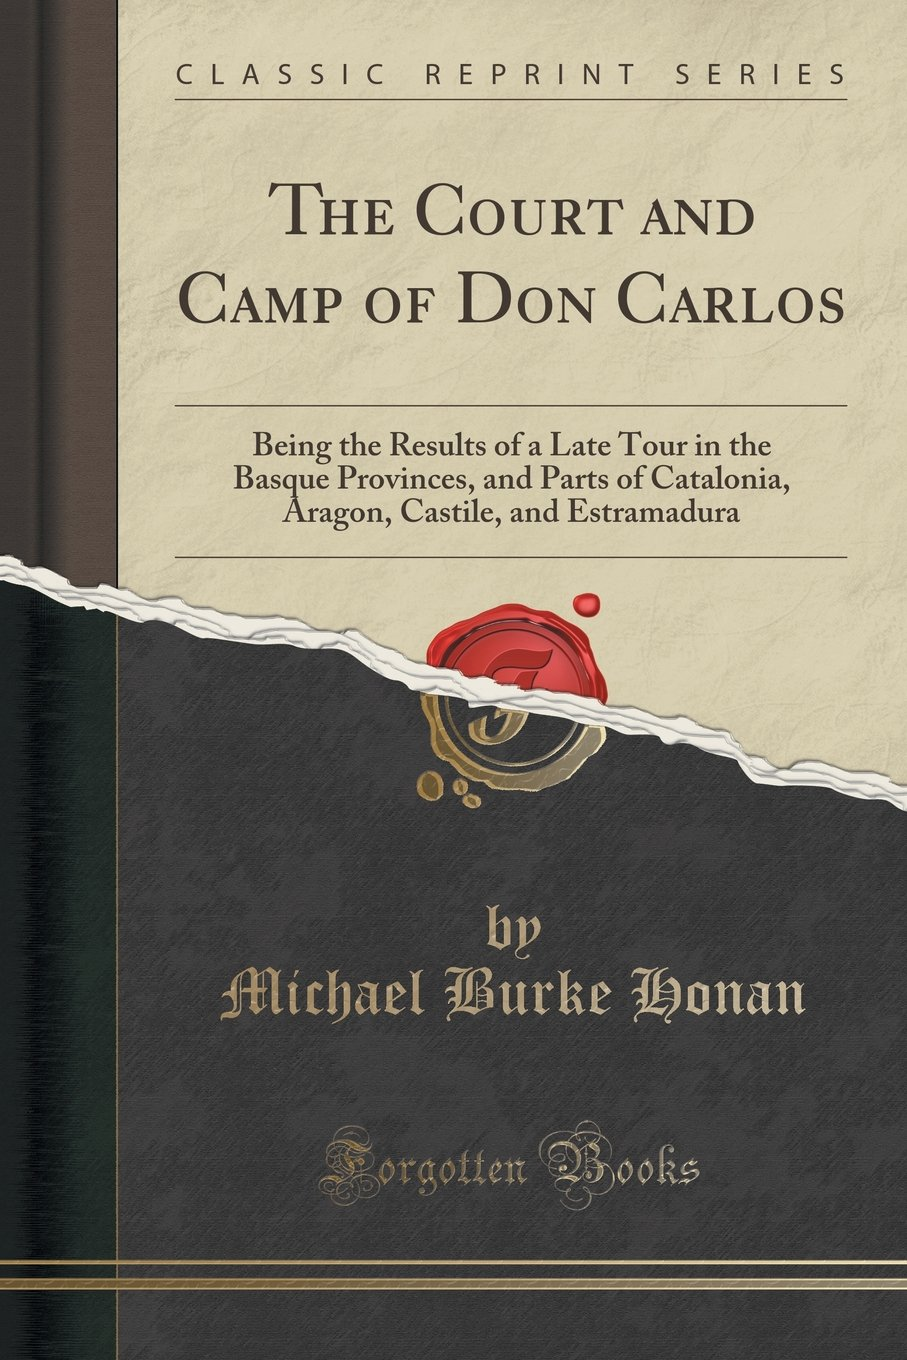 The Court and Camp of Don Carlos: Being the Results of a Late Tour in the Basque Provinces, and Parts of Catalonia, Aragon, Castile, and Estramadura (Classic Reprint) pdf epub